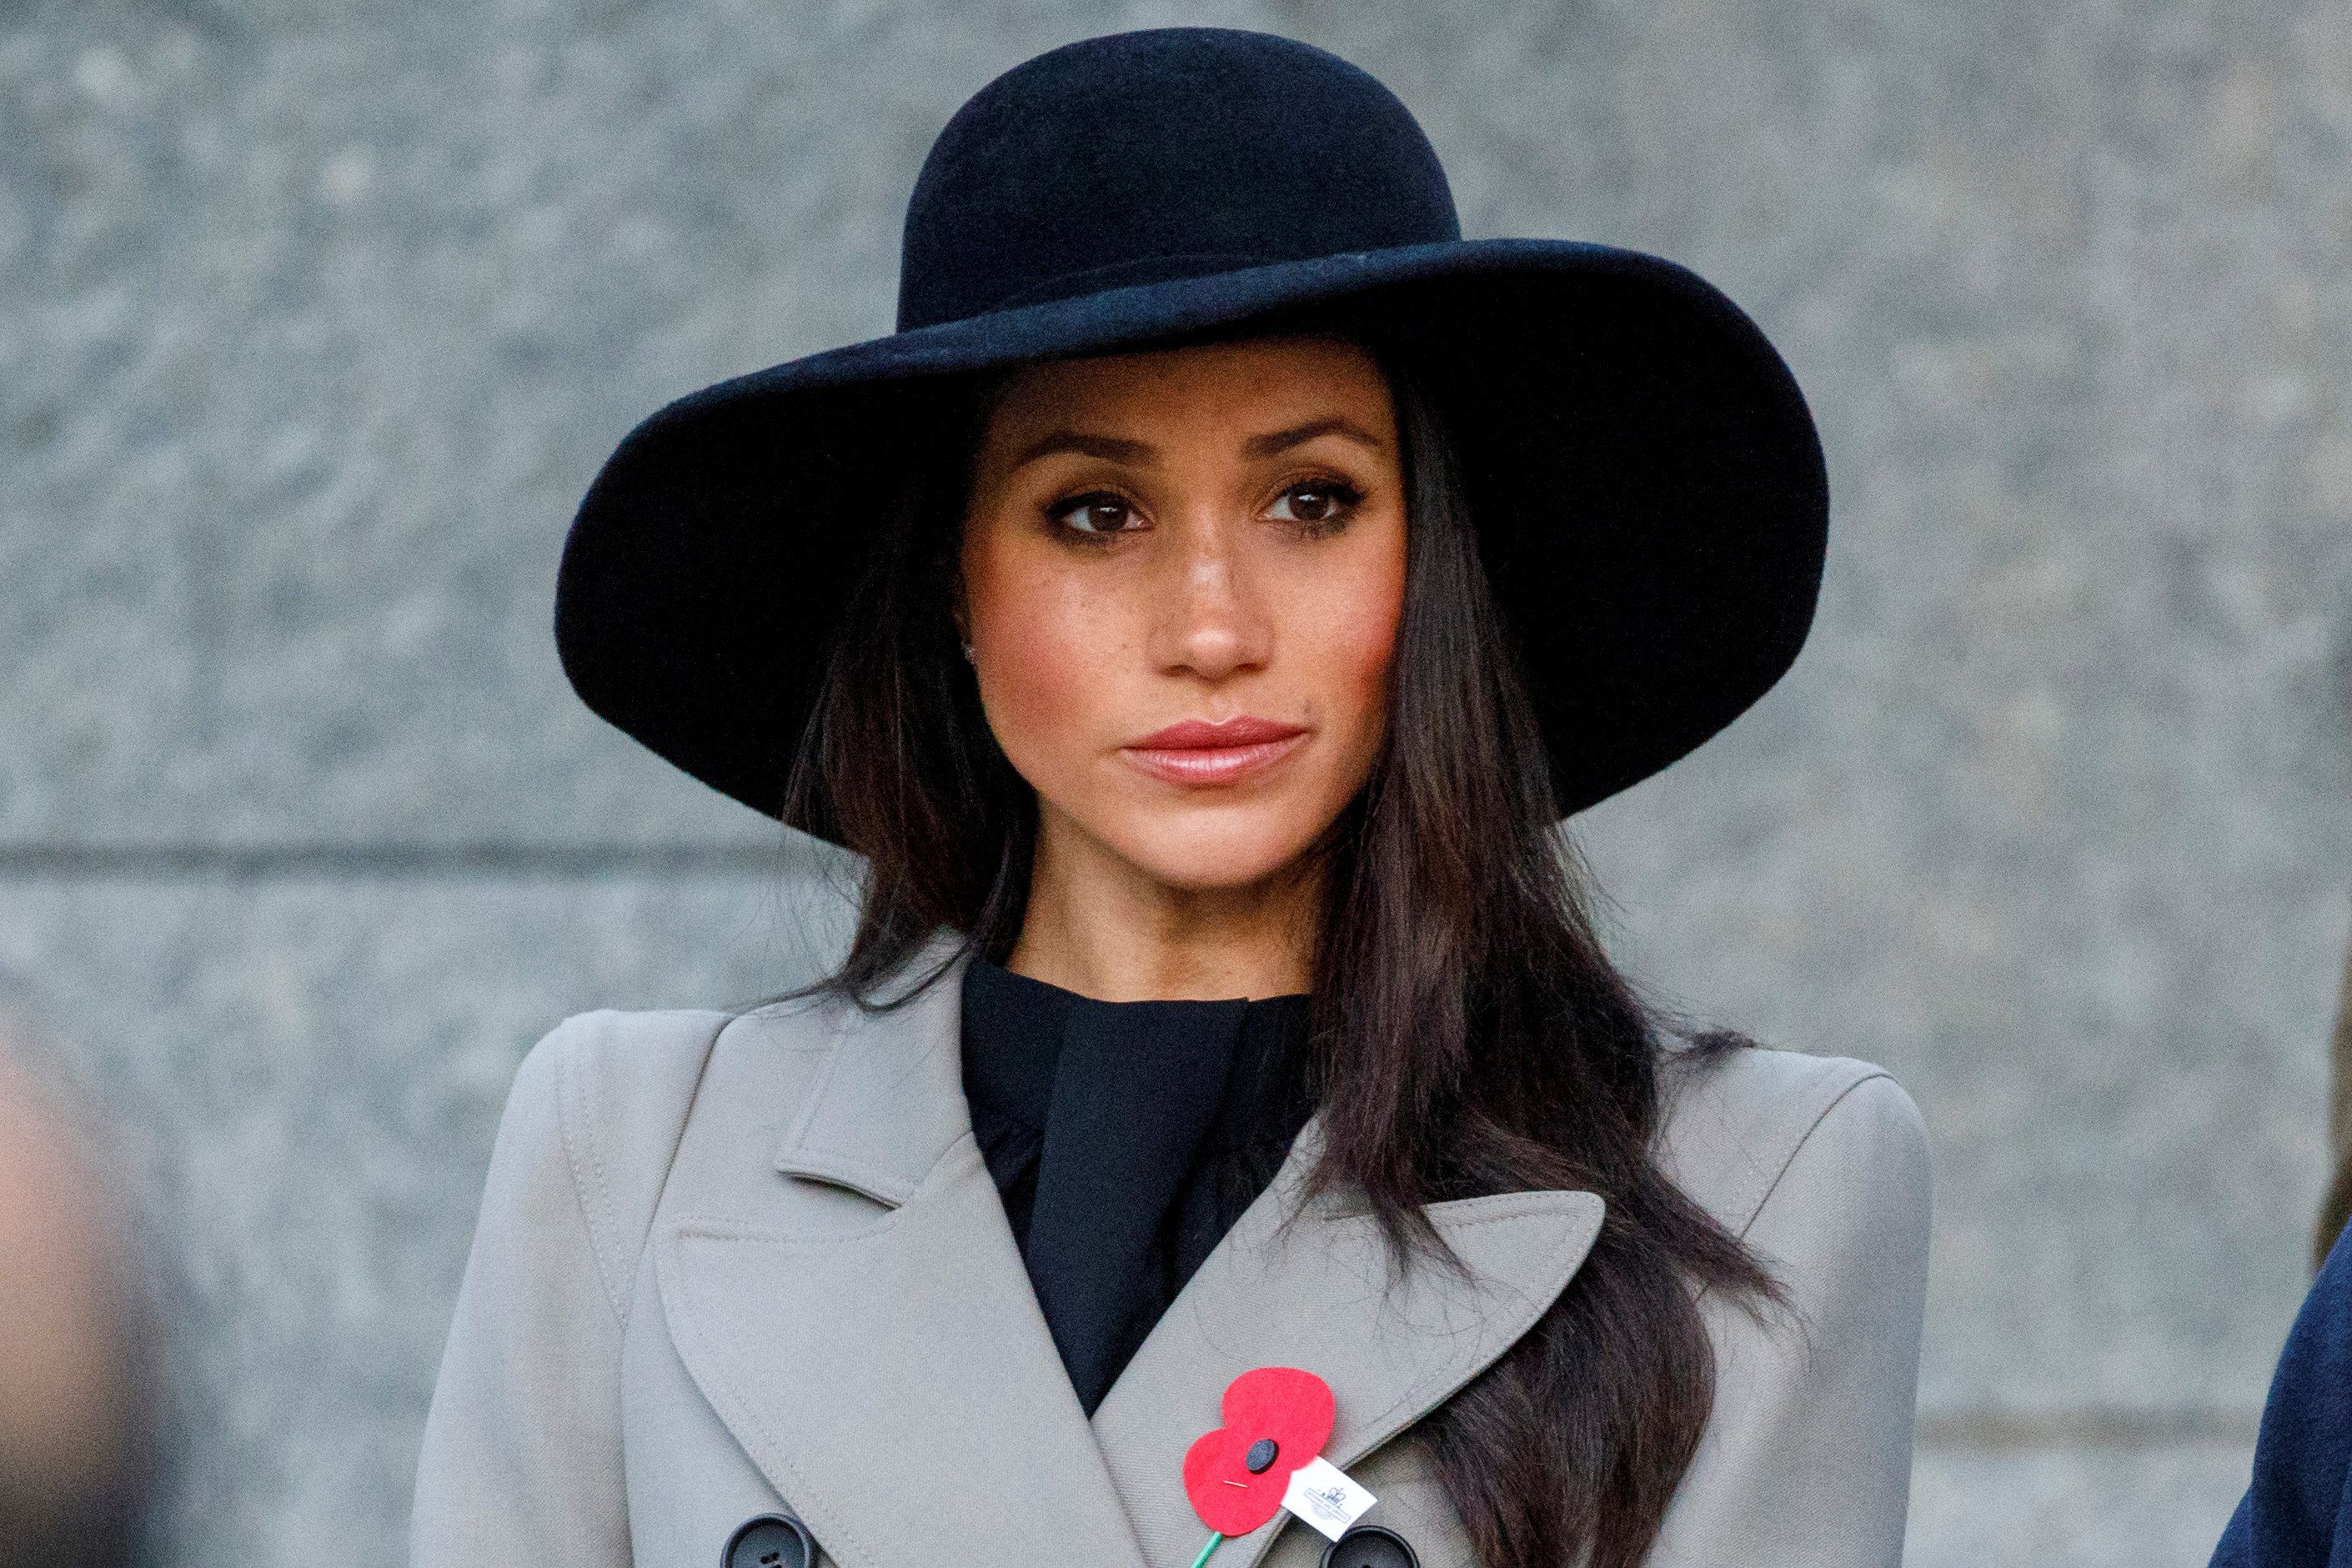 Meghan Markle, the fiancee of Britain's Prince Harry, attends the Dawn Service at Wellington Arch to commemorate Anzac Day in London, Britain, April 25, 2018. Tolga Akmen/Pool via Reuters